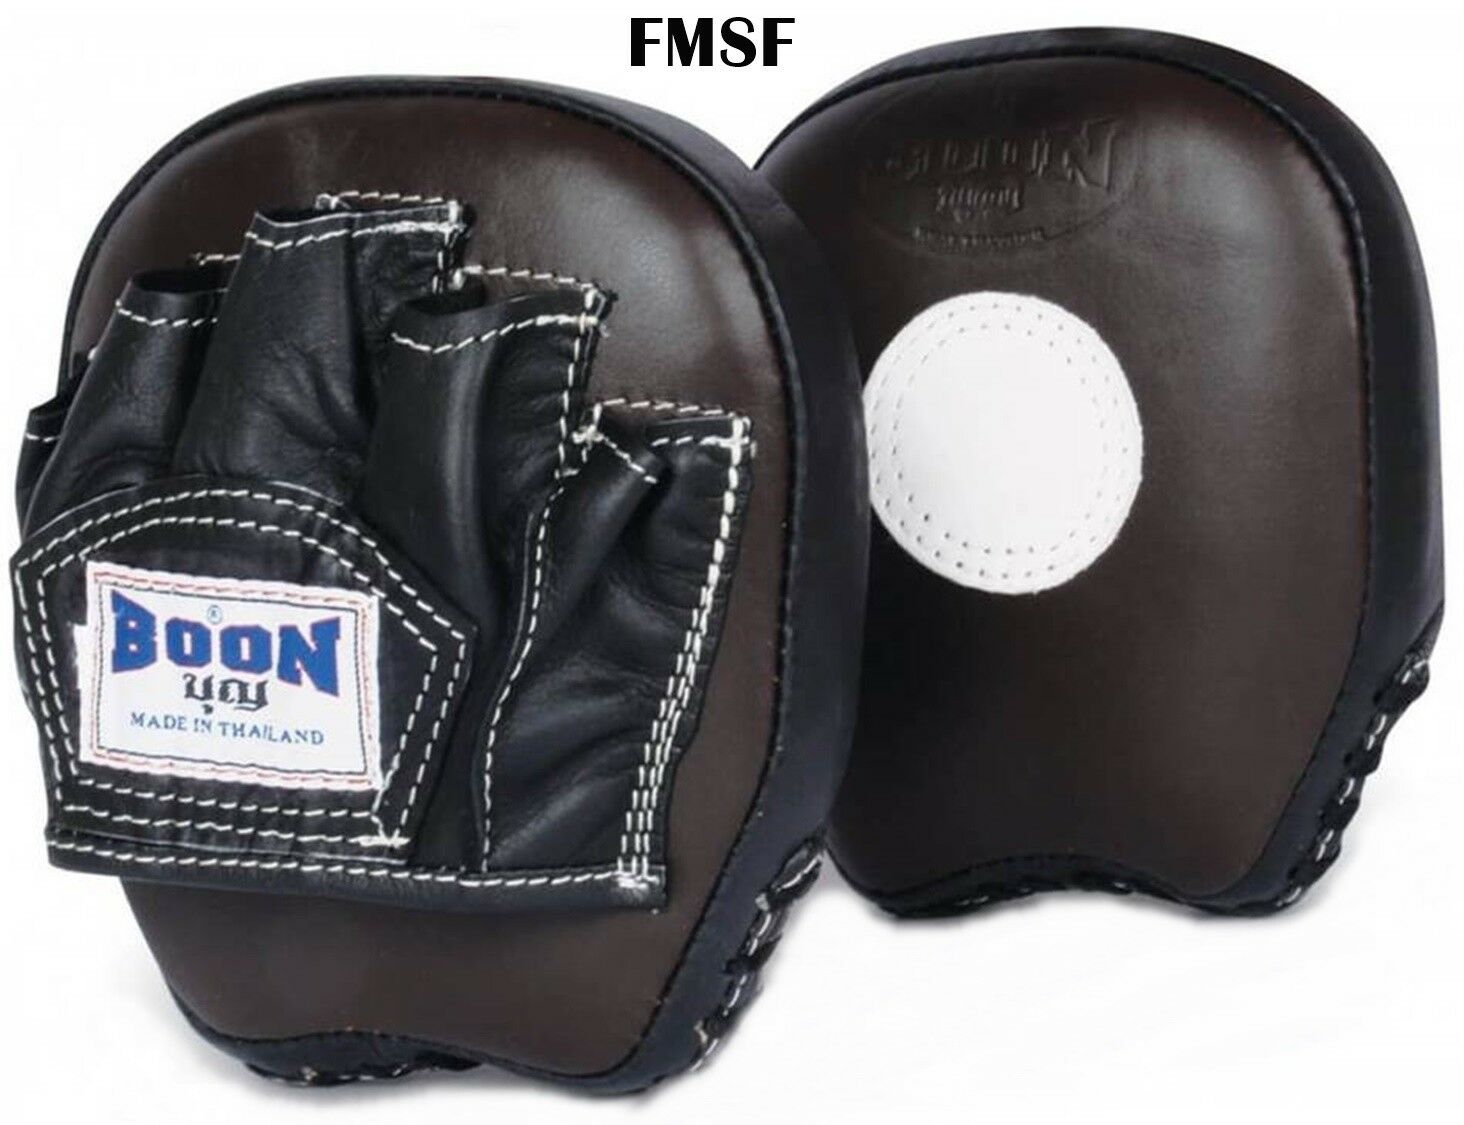 BOON FOCUS MITTS SMALL FLAT FMSF GENUINE LEATHER TRAINING   MUAY THAI K1 MMA  sale outlet